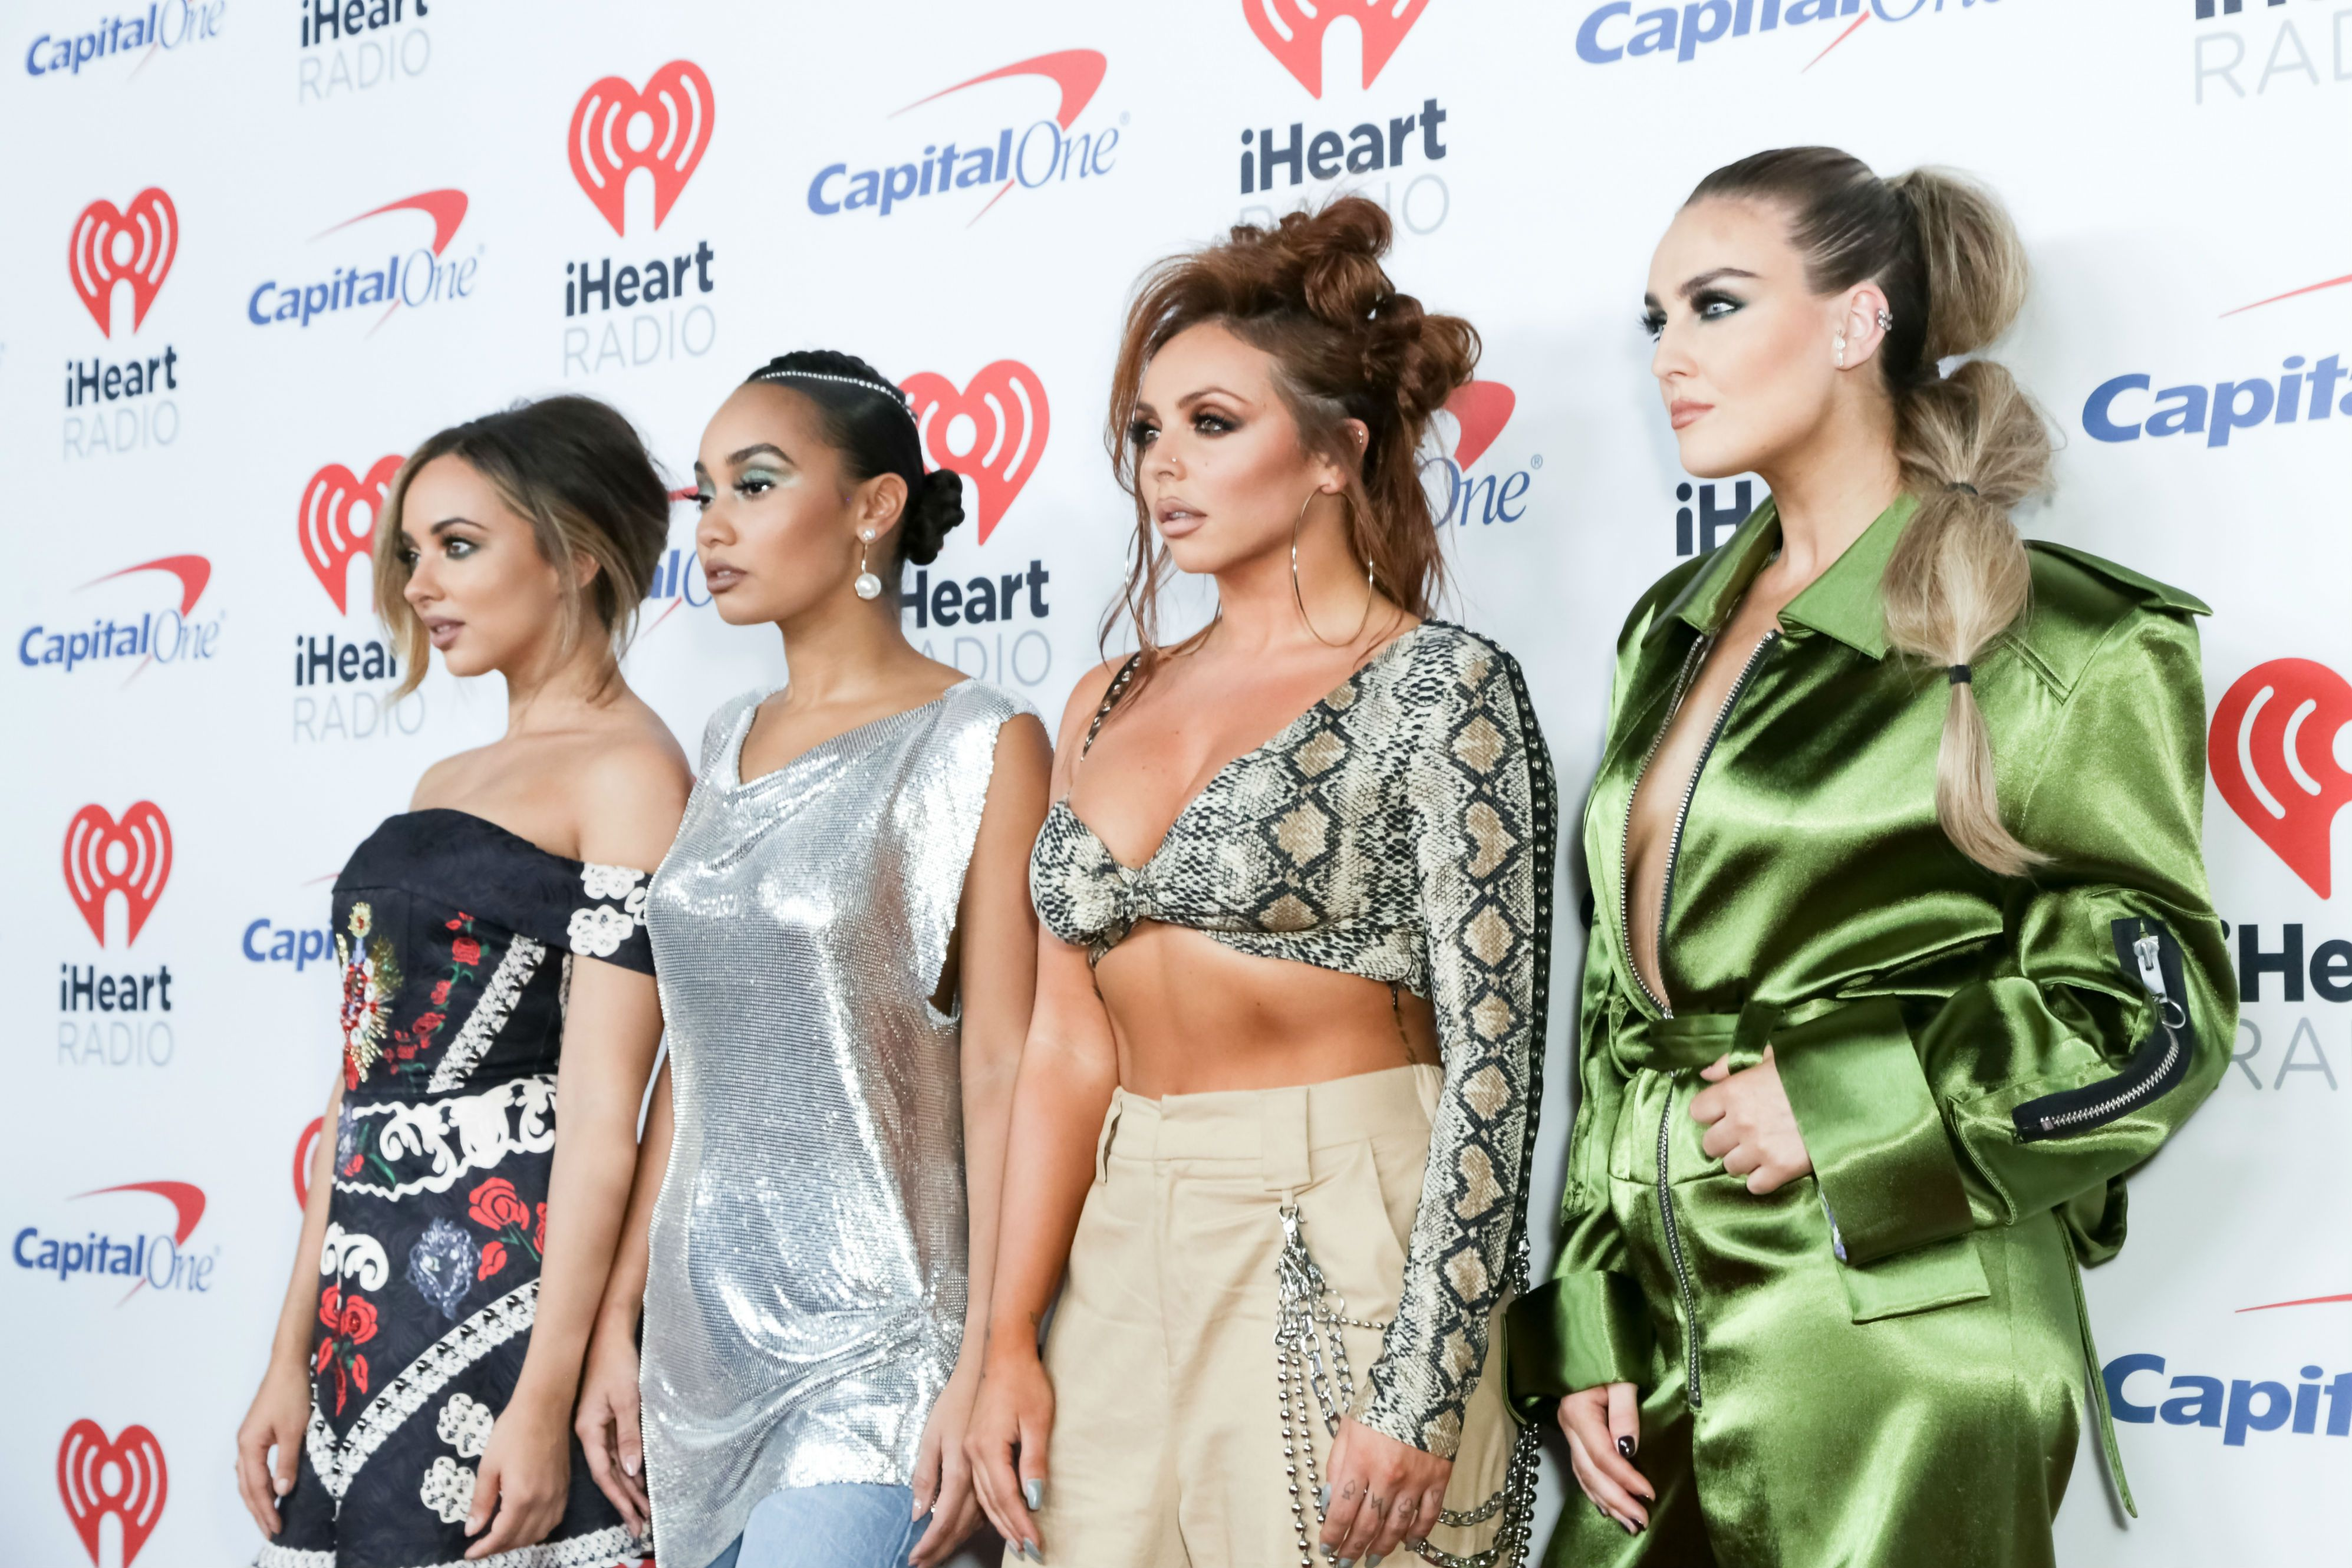 Jade Thirlwall, Leigh-Anne Pinnock, Jesy Nelson, and Perrie Edwards of Little Mix arrive at the 2017 iHeartRadio Music Festival at T-Mobile Arena